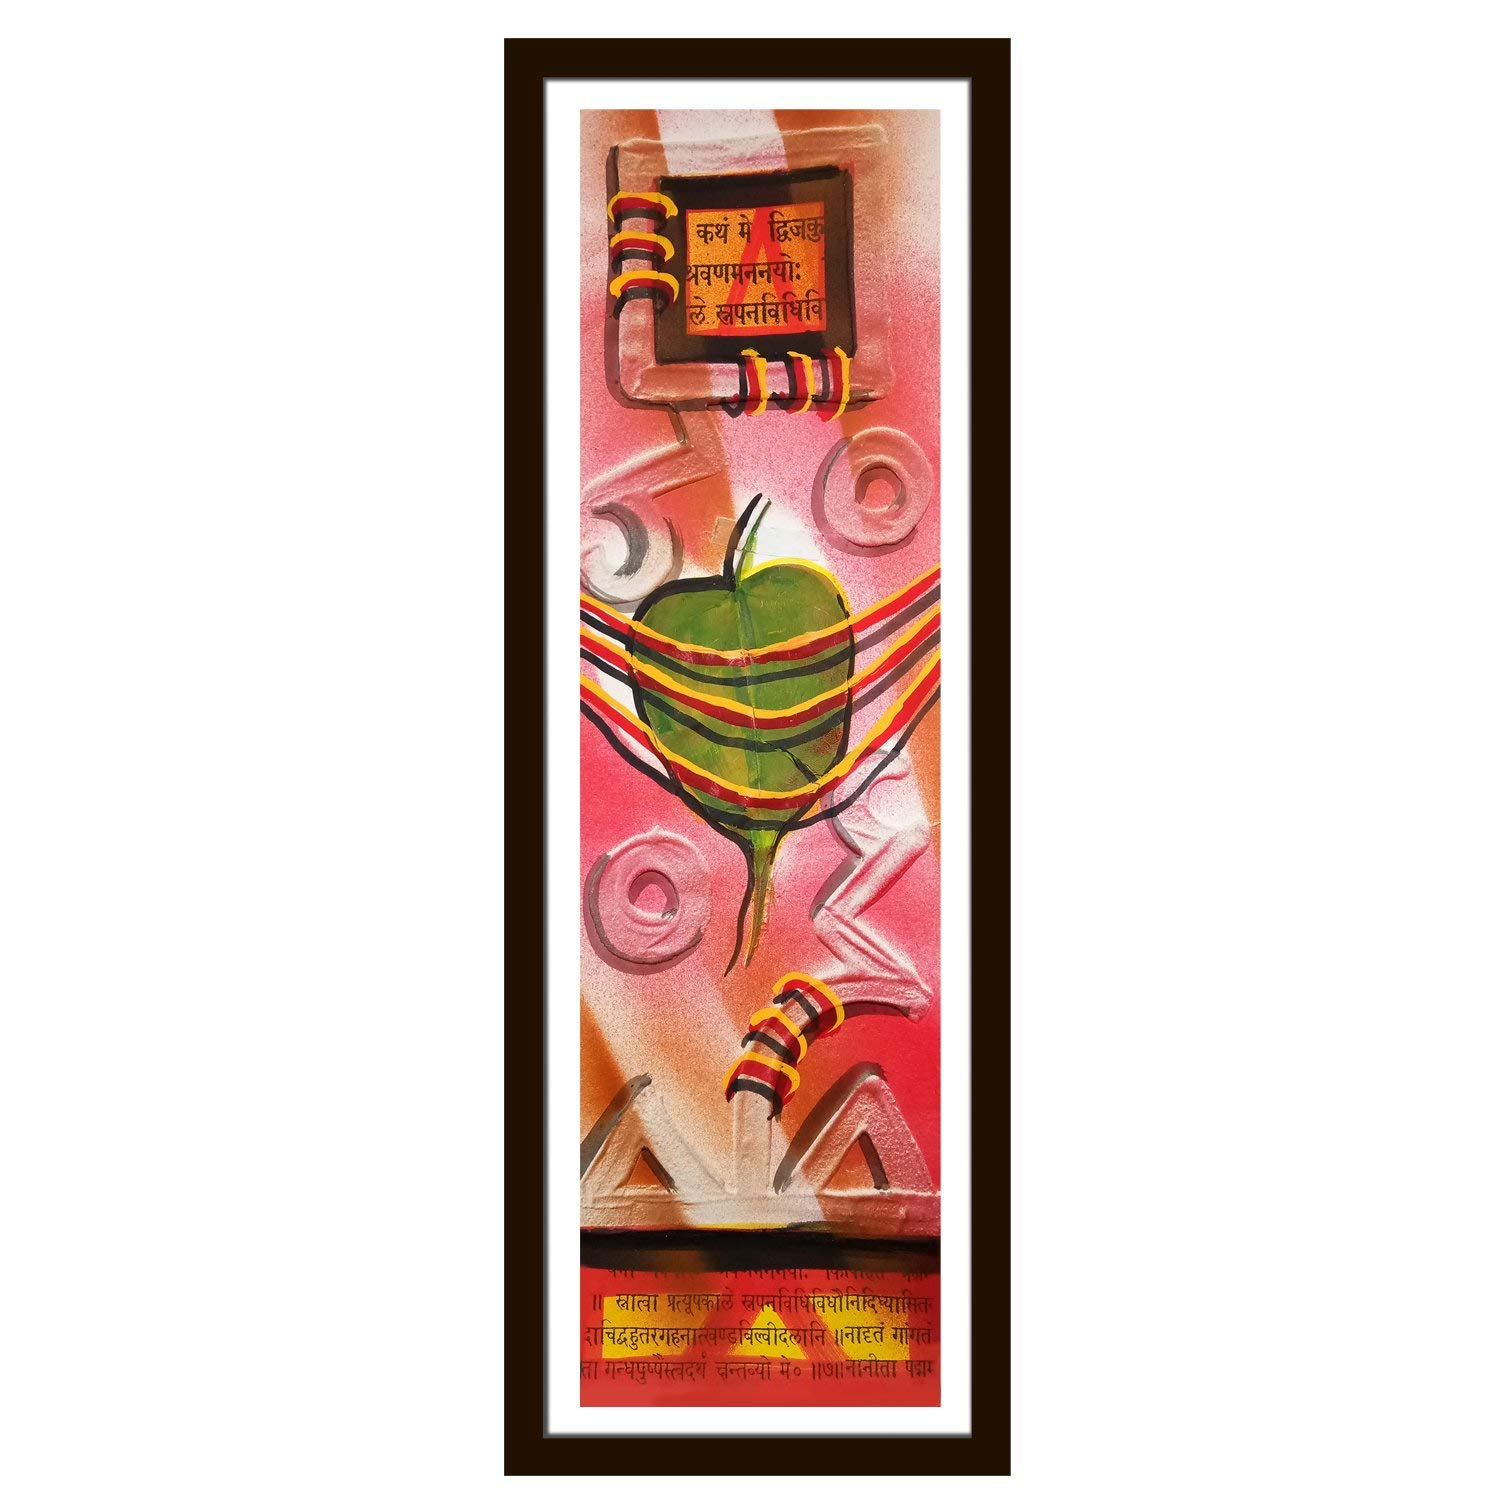 Handmade Wall Décor 3d Clay Painting On Plastic Paper with Natural Colors Wall Hanging Painting - The Theme Of Real Peepal Tree Leaf with House-Warming & Sanskrit Shlok Use For Wall Décor & Gifting